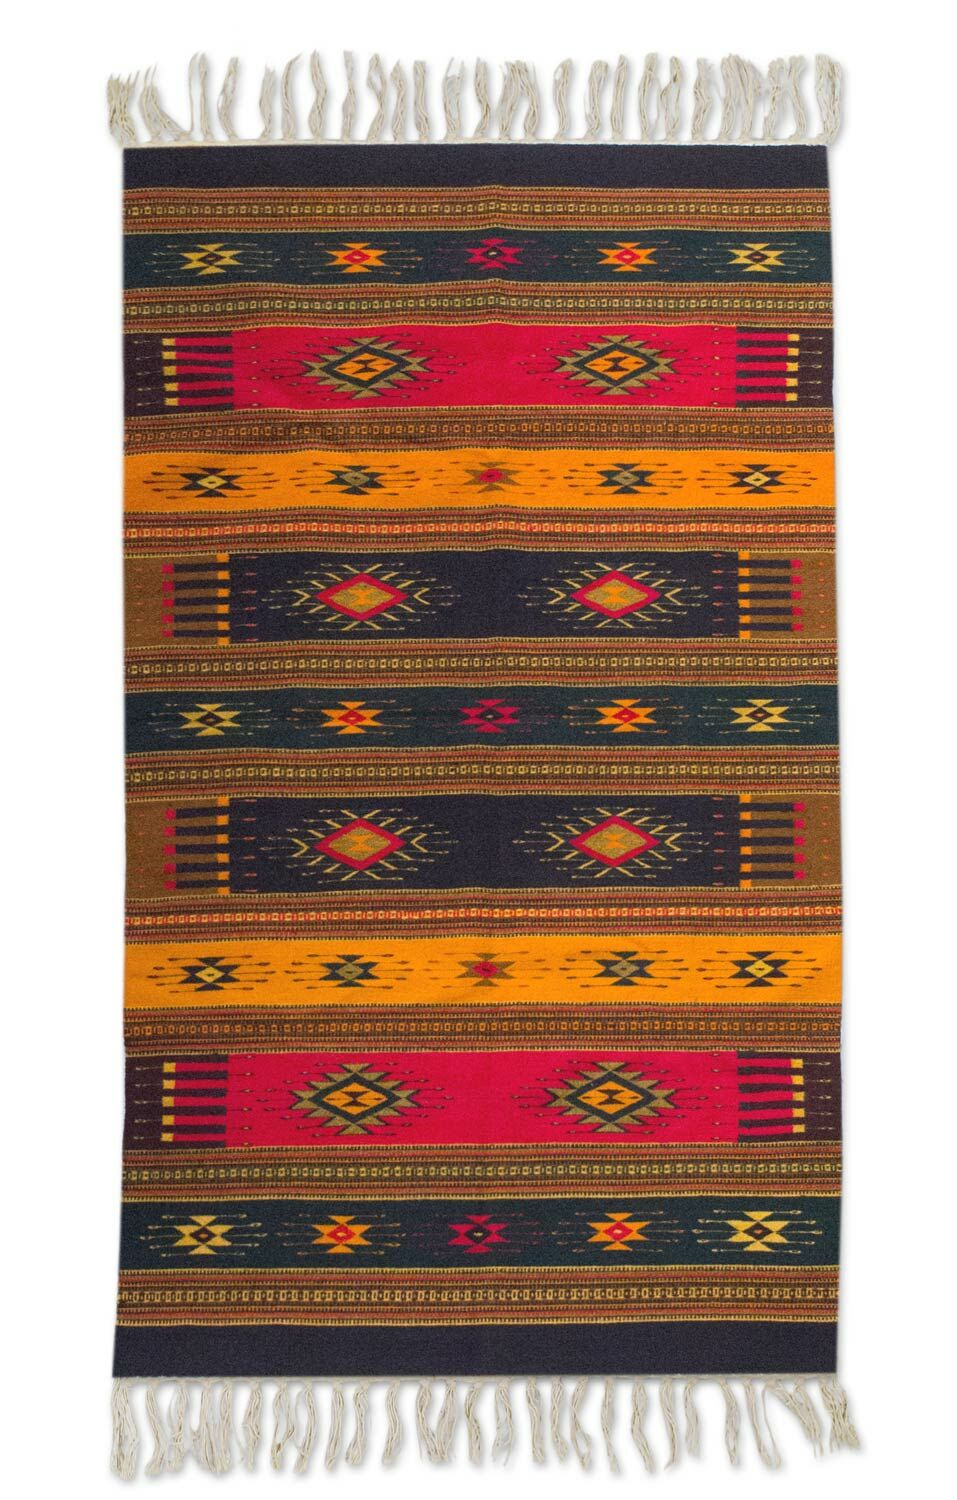 Weare Multicolored 'Colors of Life' Expertly Hand Woven Mexican Wool Home Decor Area Rug